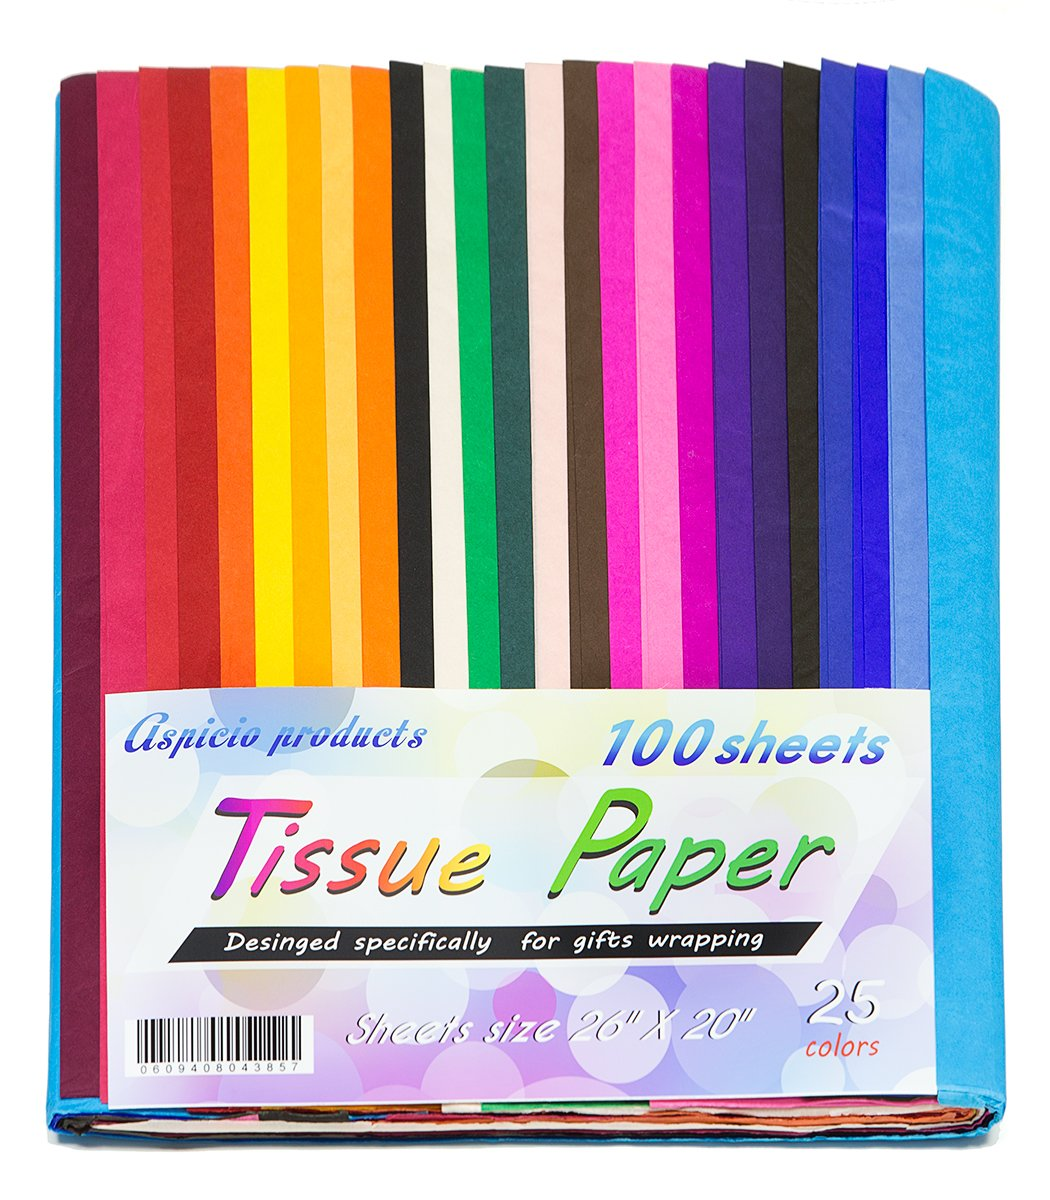 Colored Tissue Paper 100 Vivid Multi Color Sheets Size 26'' X 20'' Assorted Bulkl 25 Bold Solid Colors